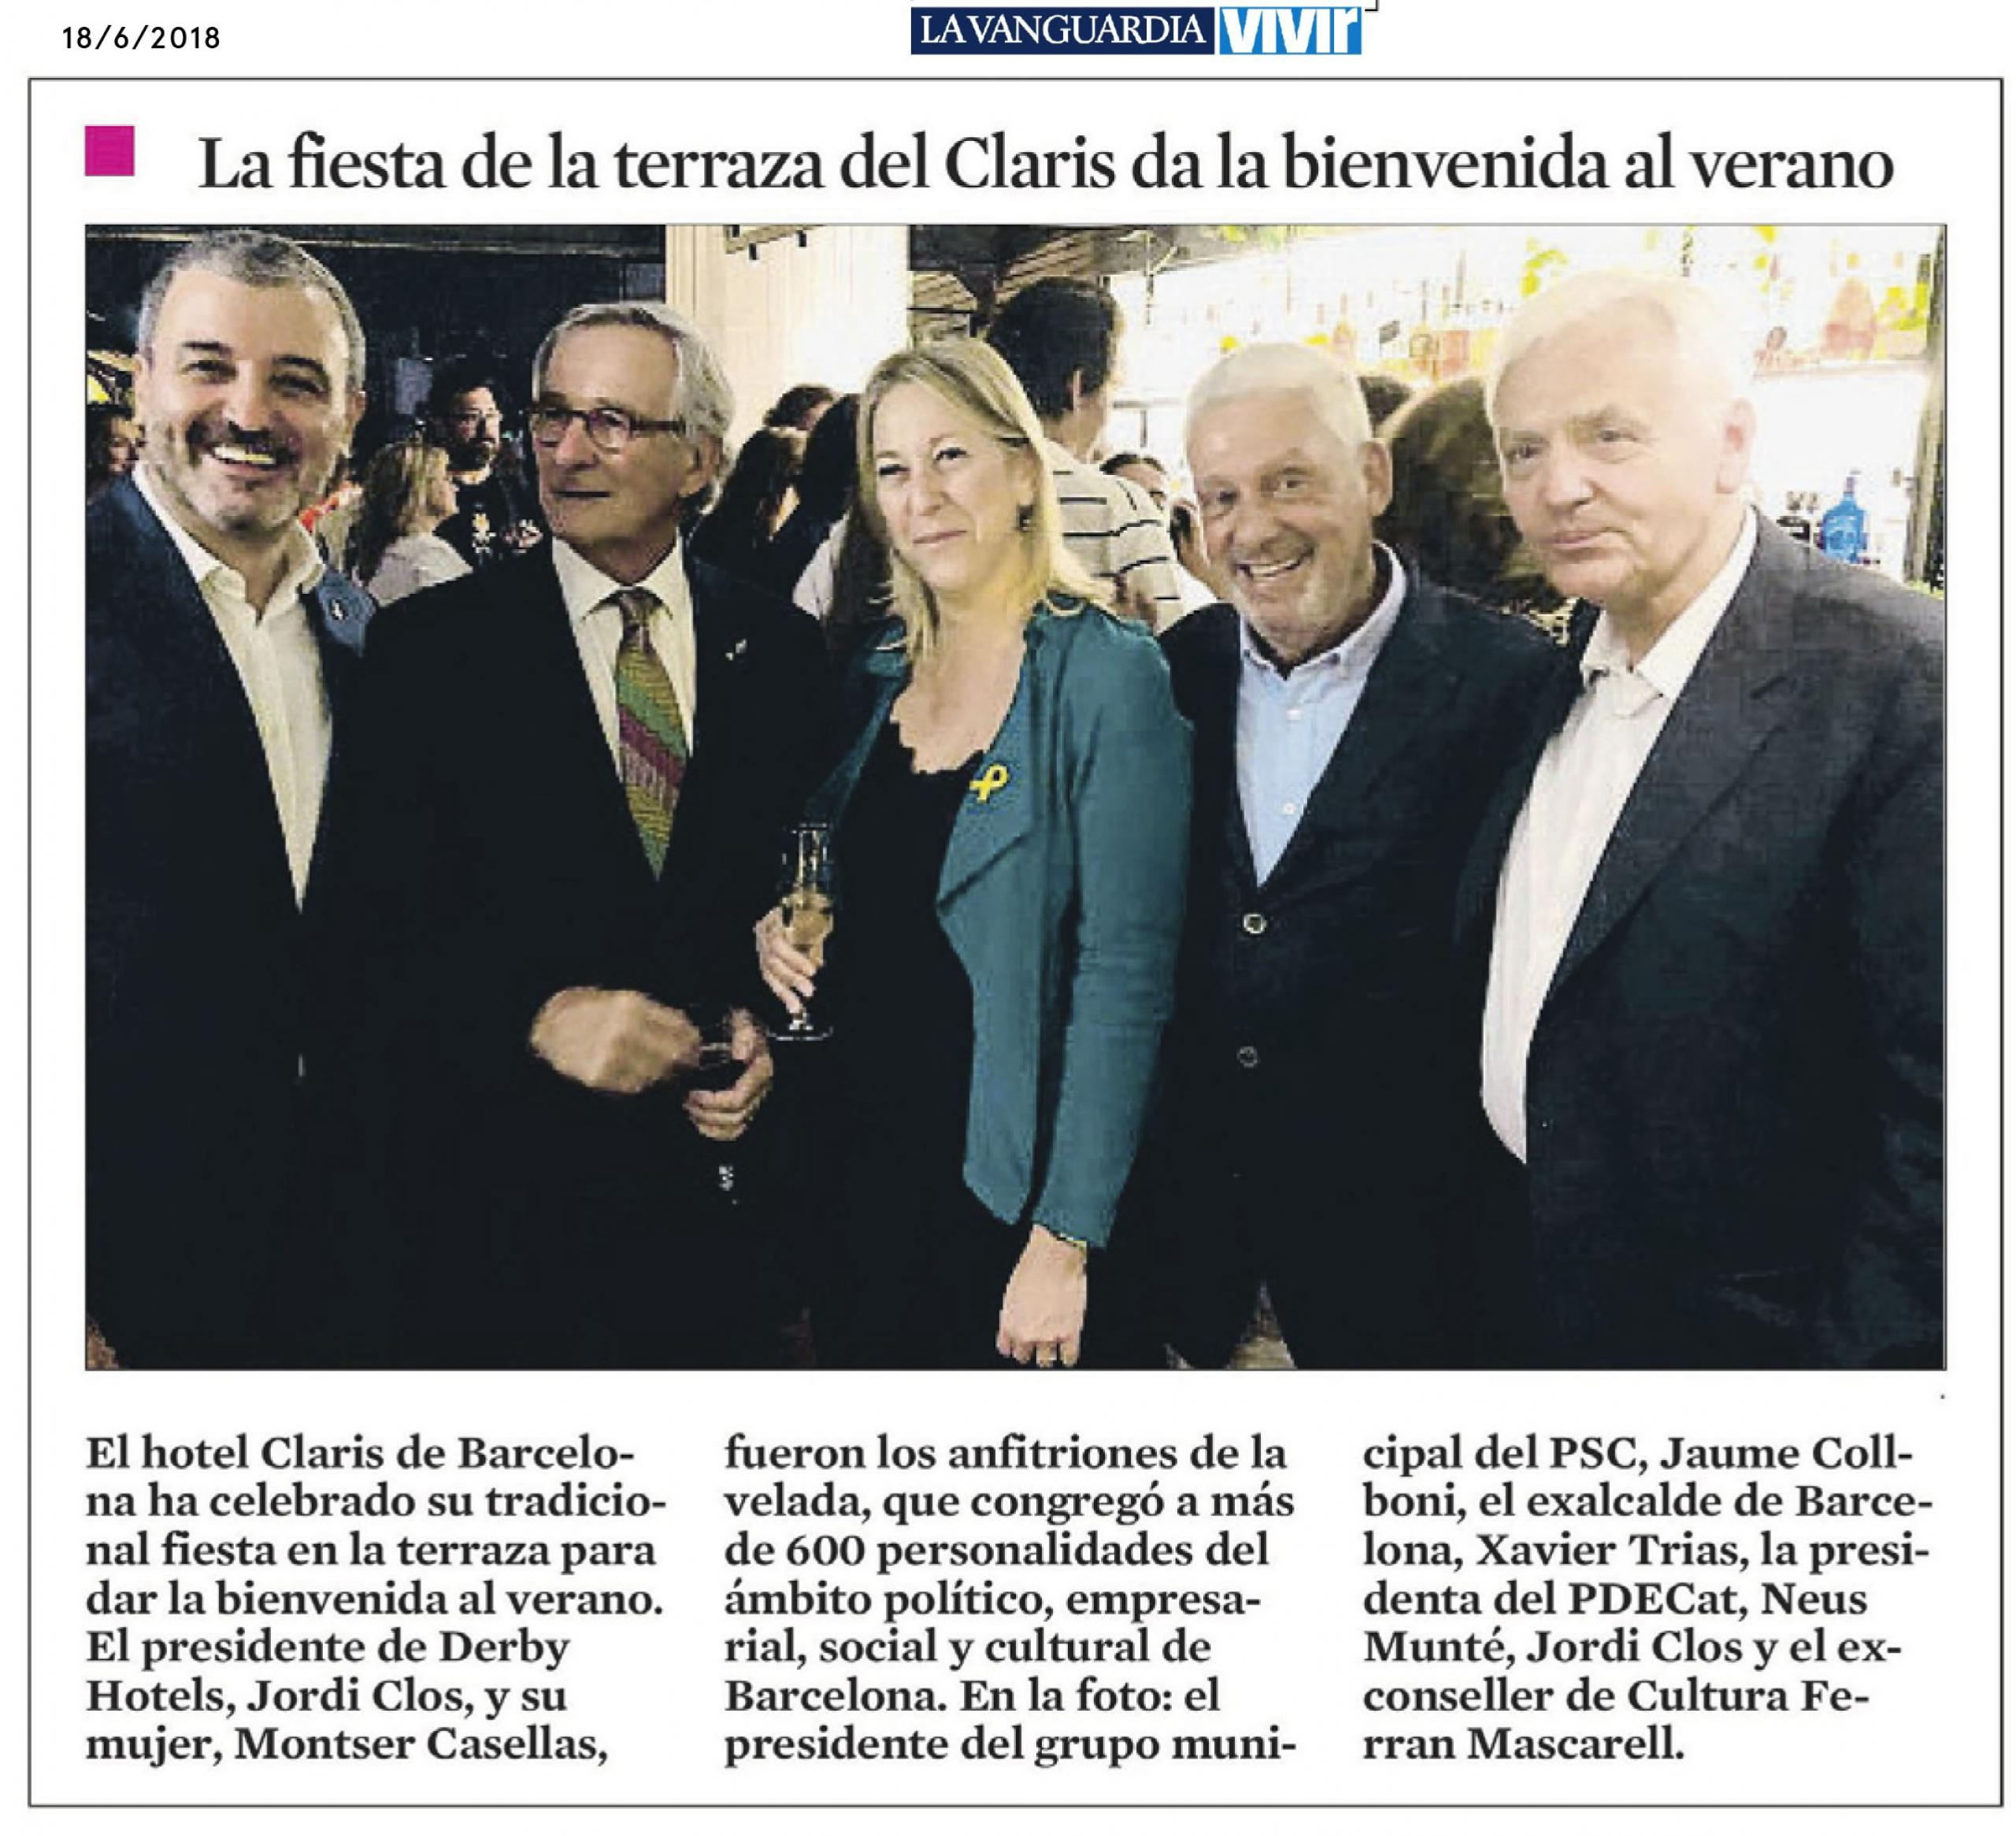 Area stampa di derby hotels collection hotel a barcellona for Hotel derby barcellona